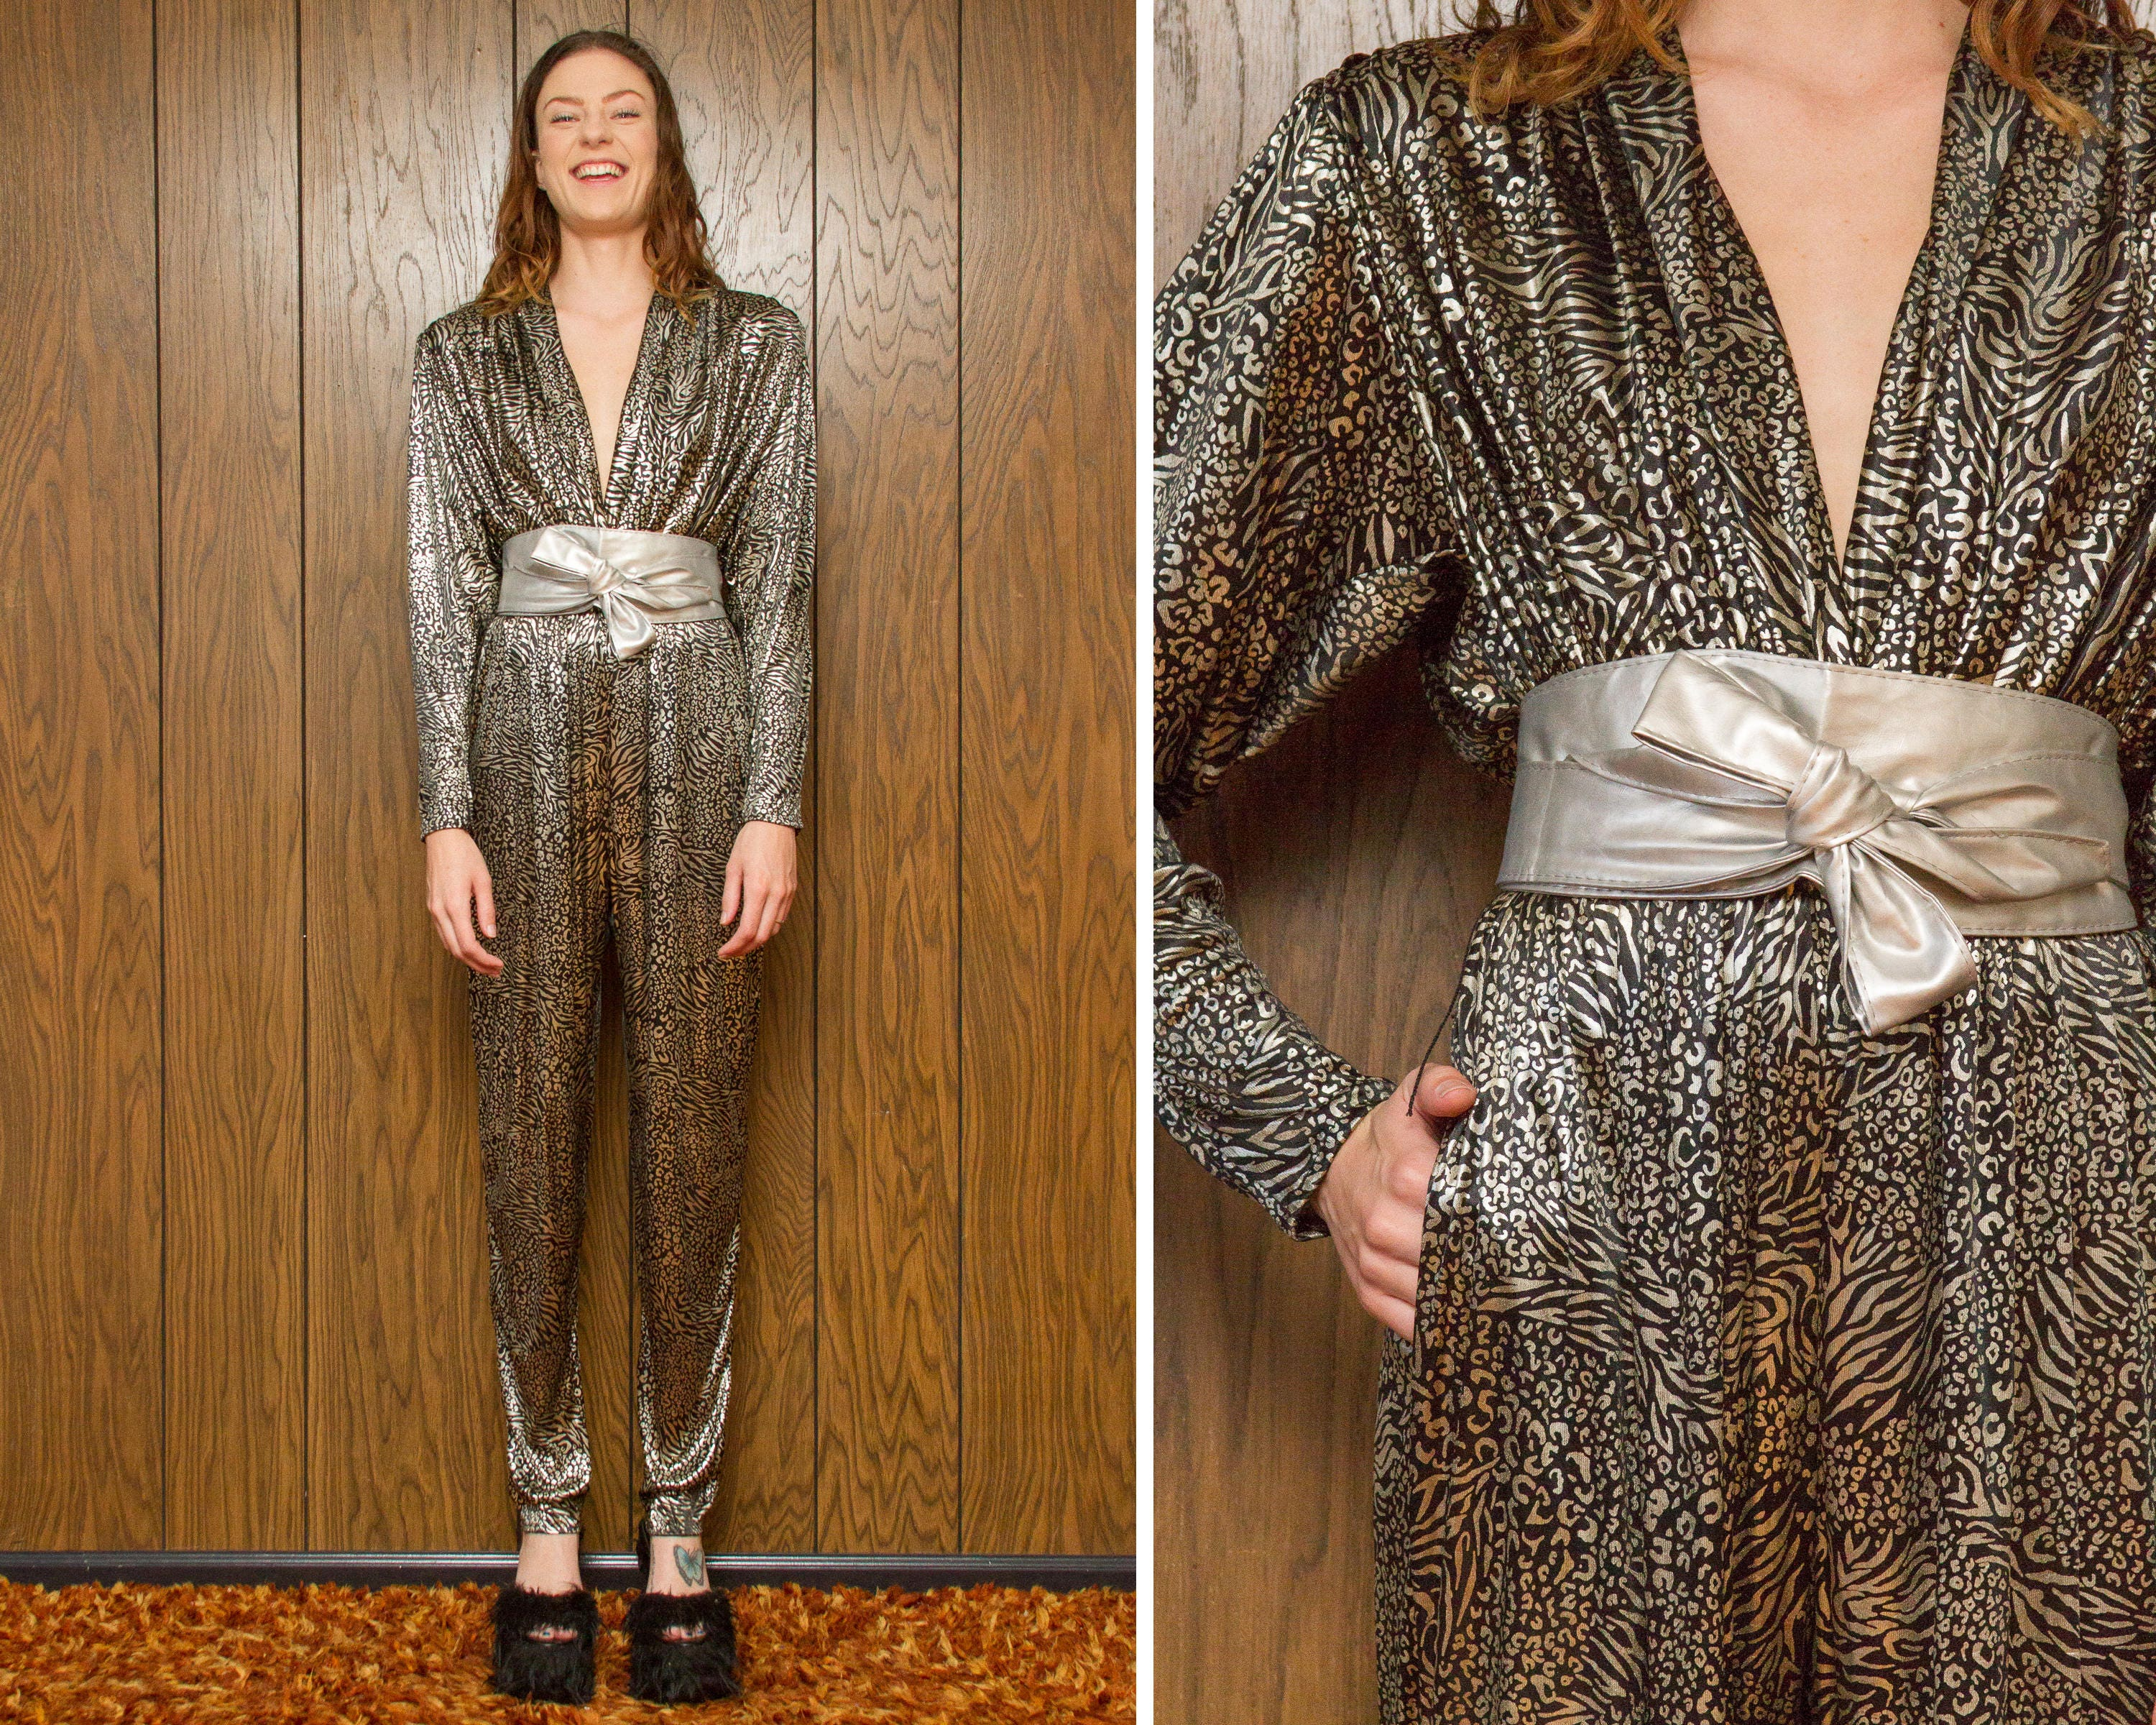 70620ed67251 Vintage 80s Rothschild Leopard Animal Zebra Silver Metallic Shiny Lame  Black Harem Belted Shoulder Pad Plunge V Neck Jumpsuit Pantsuit S M L